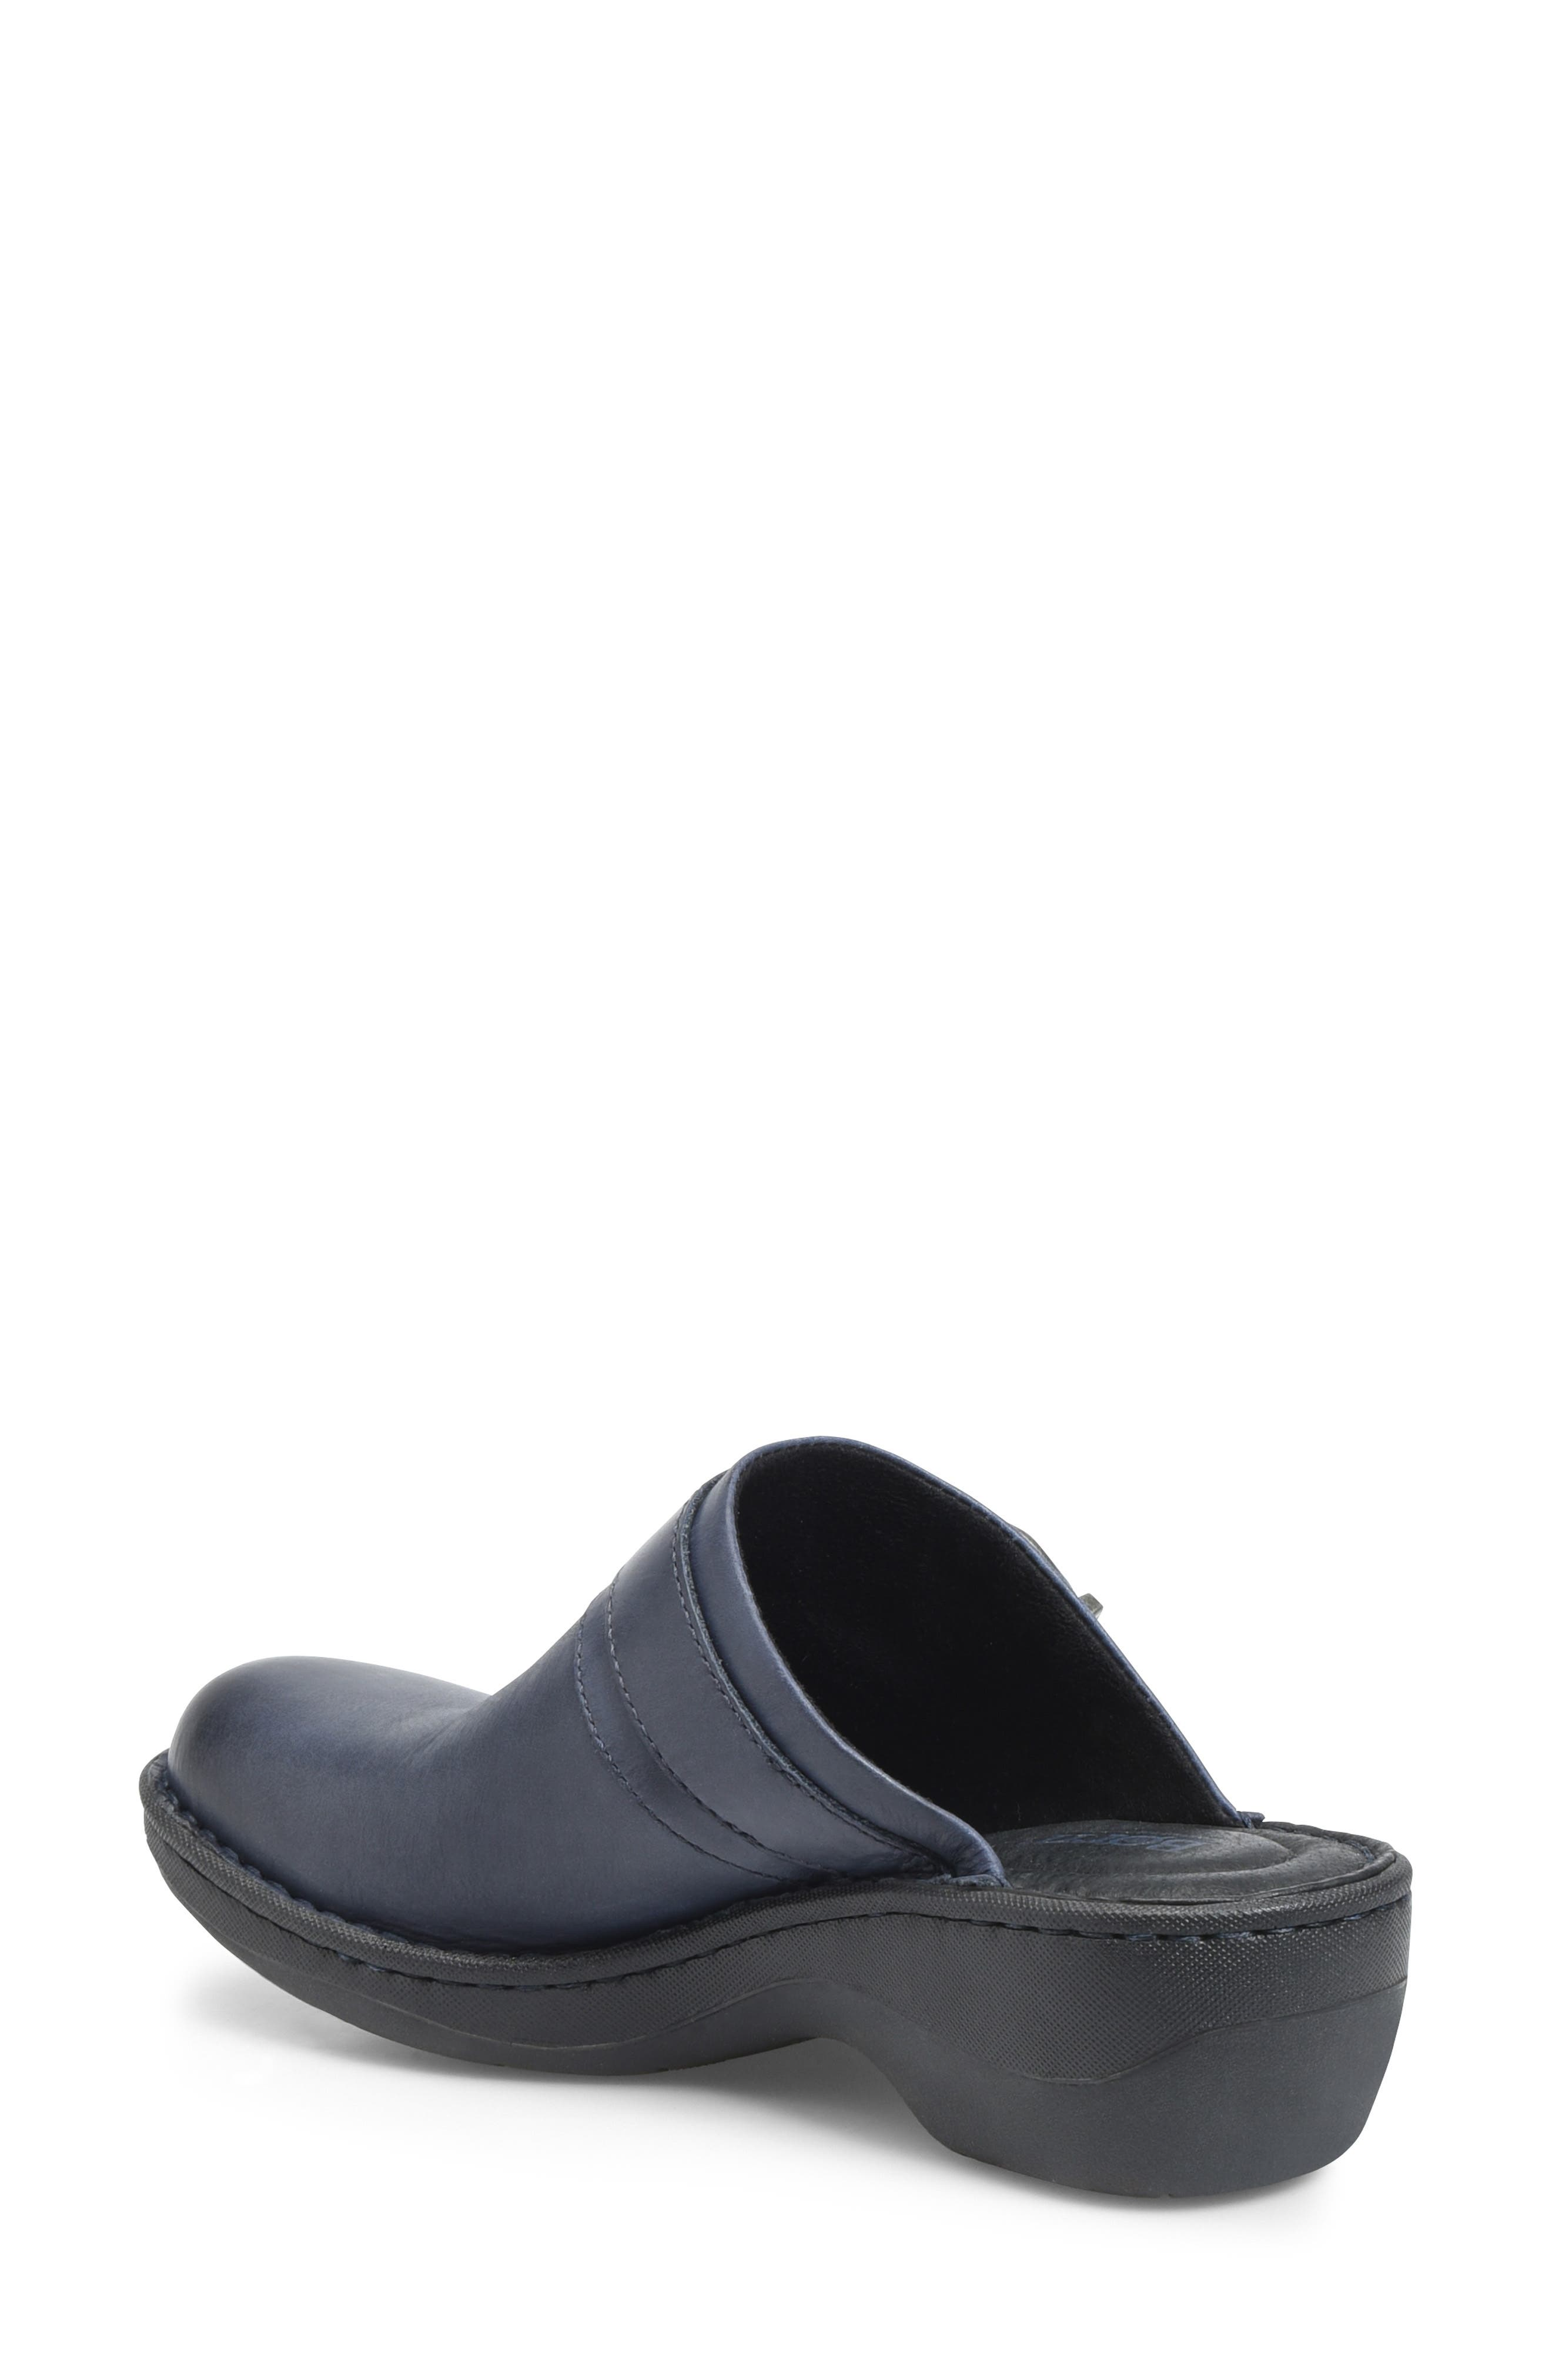 Avoca Clog,                             Alternate thumbnail 2, color,                             NAVY LEATHER